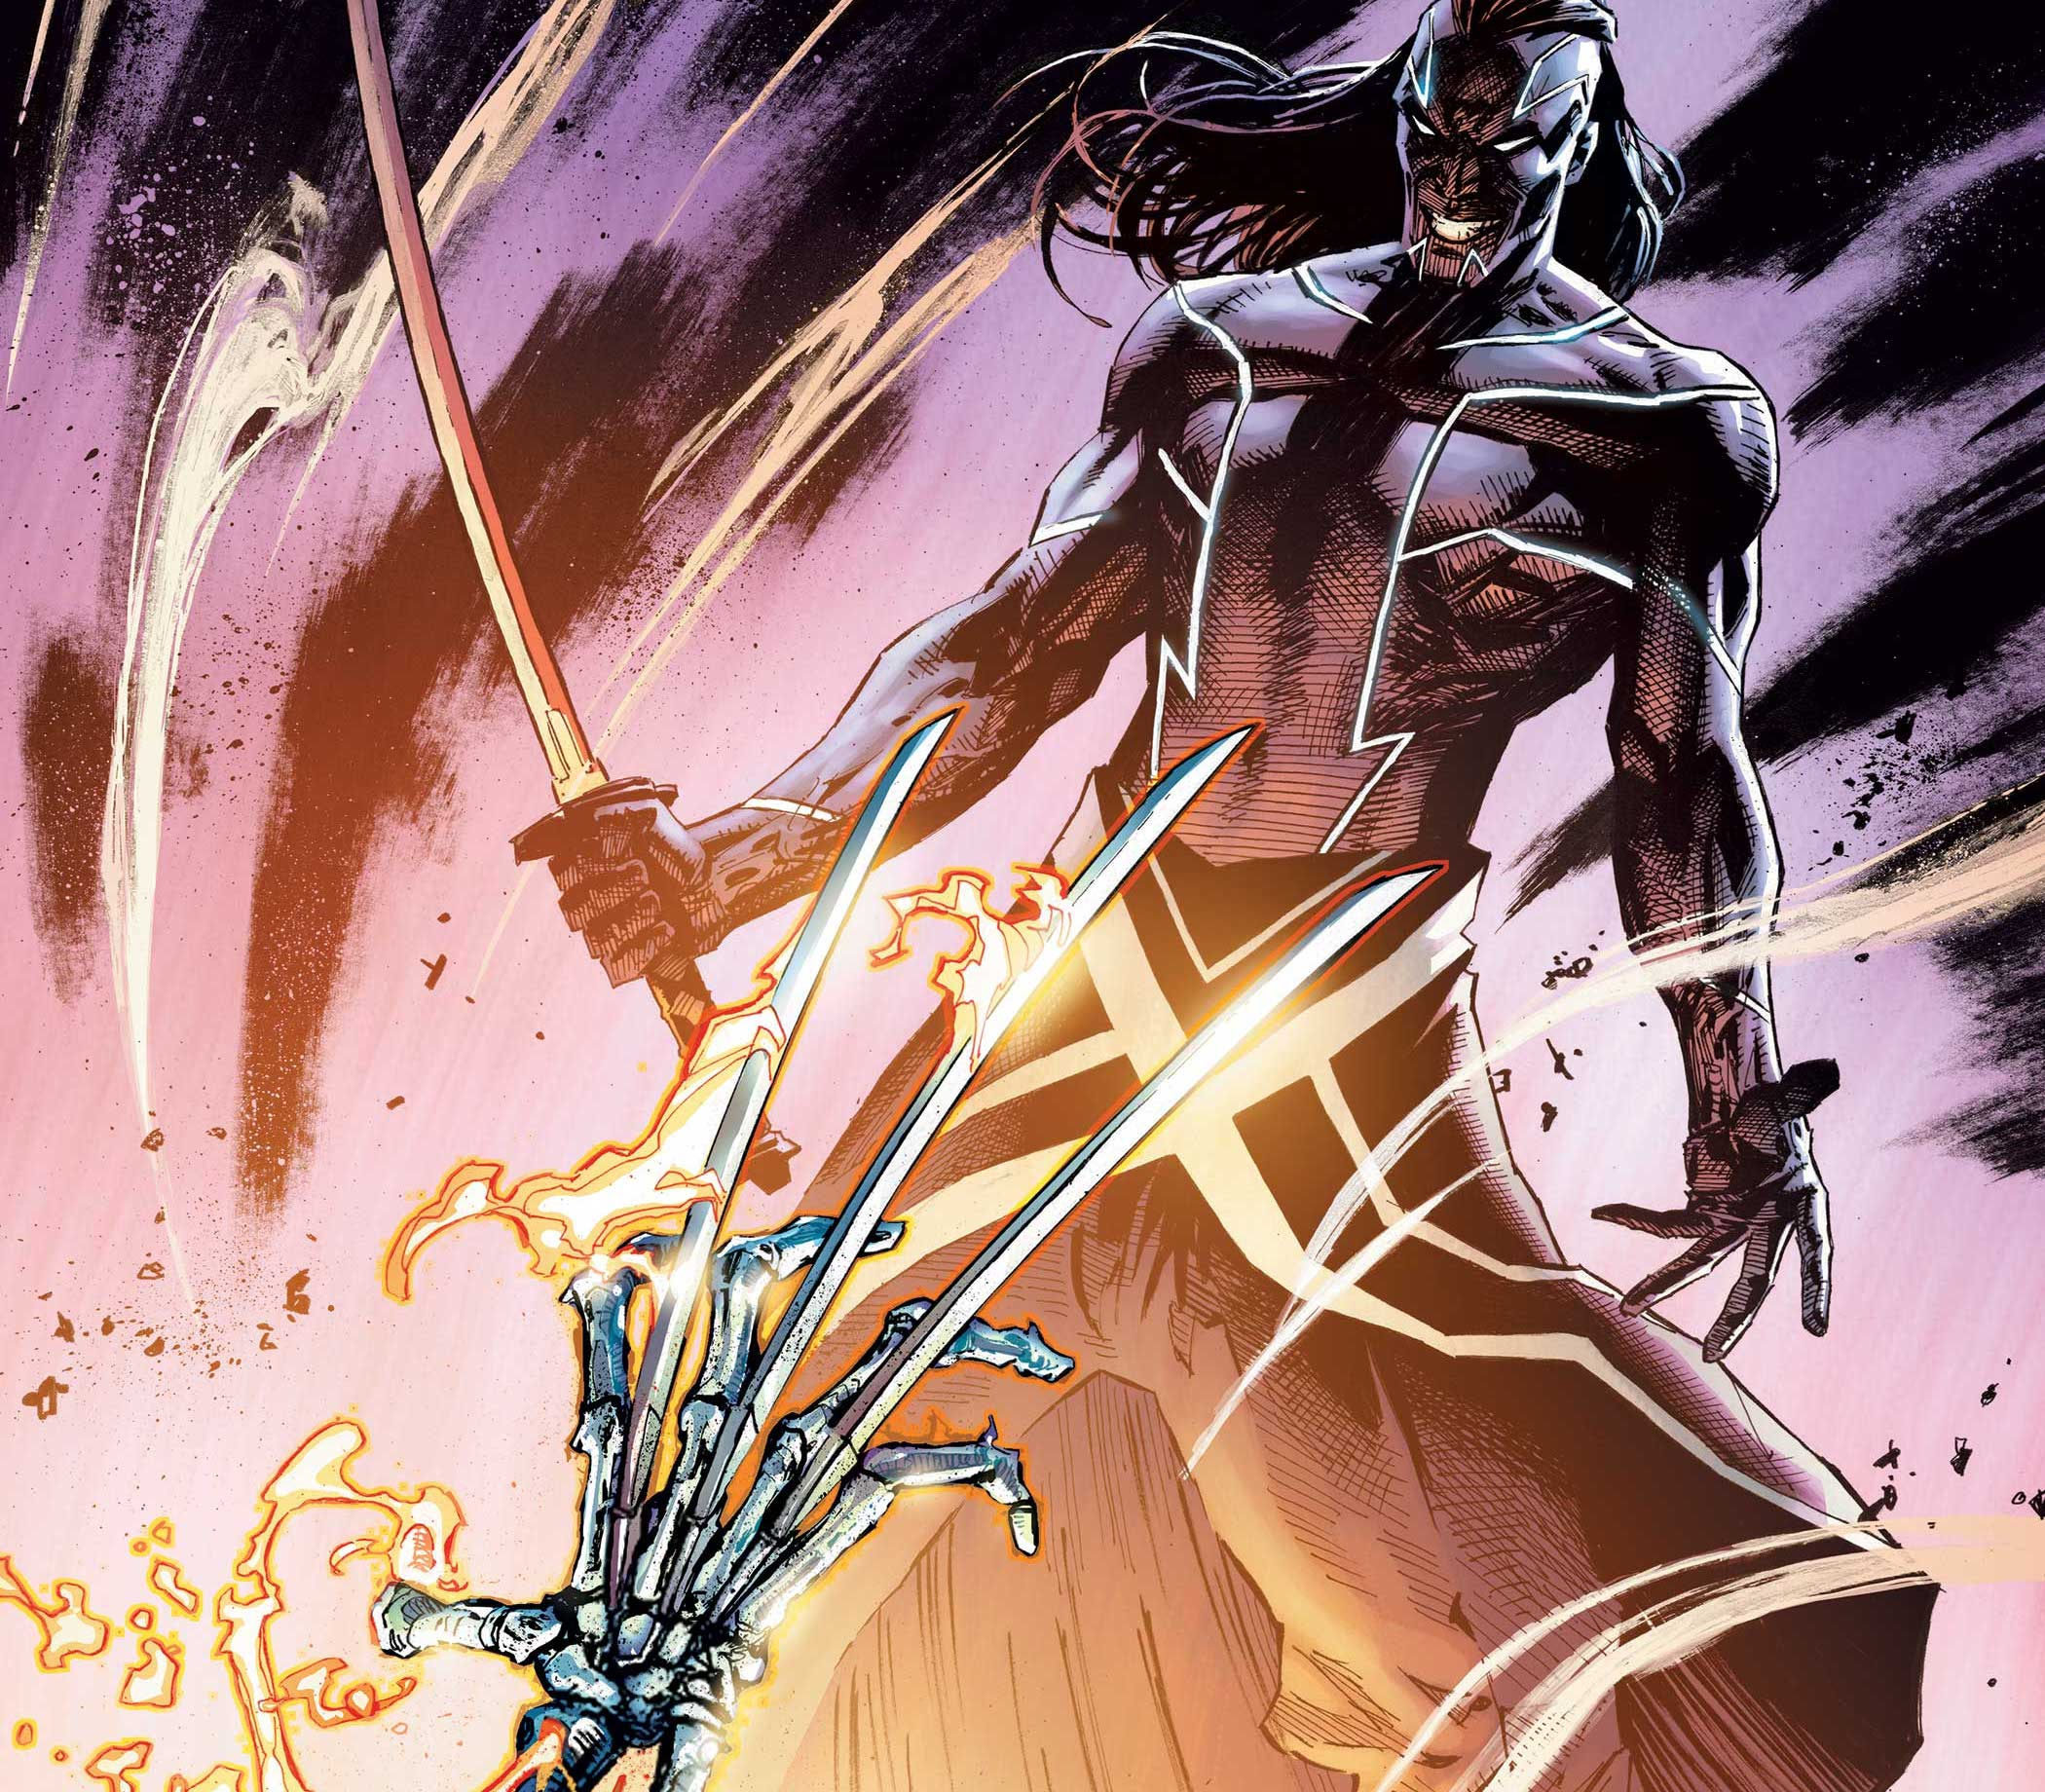 The fourth chapter in X of Swords will take place in X-Force #13.